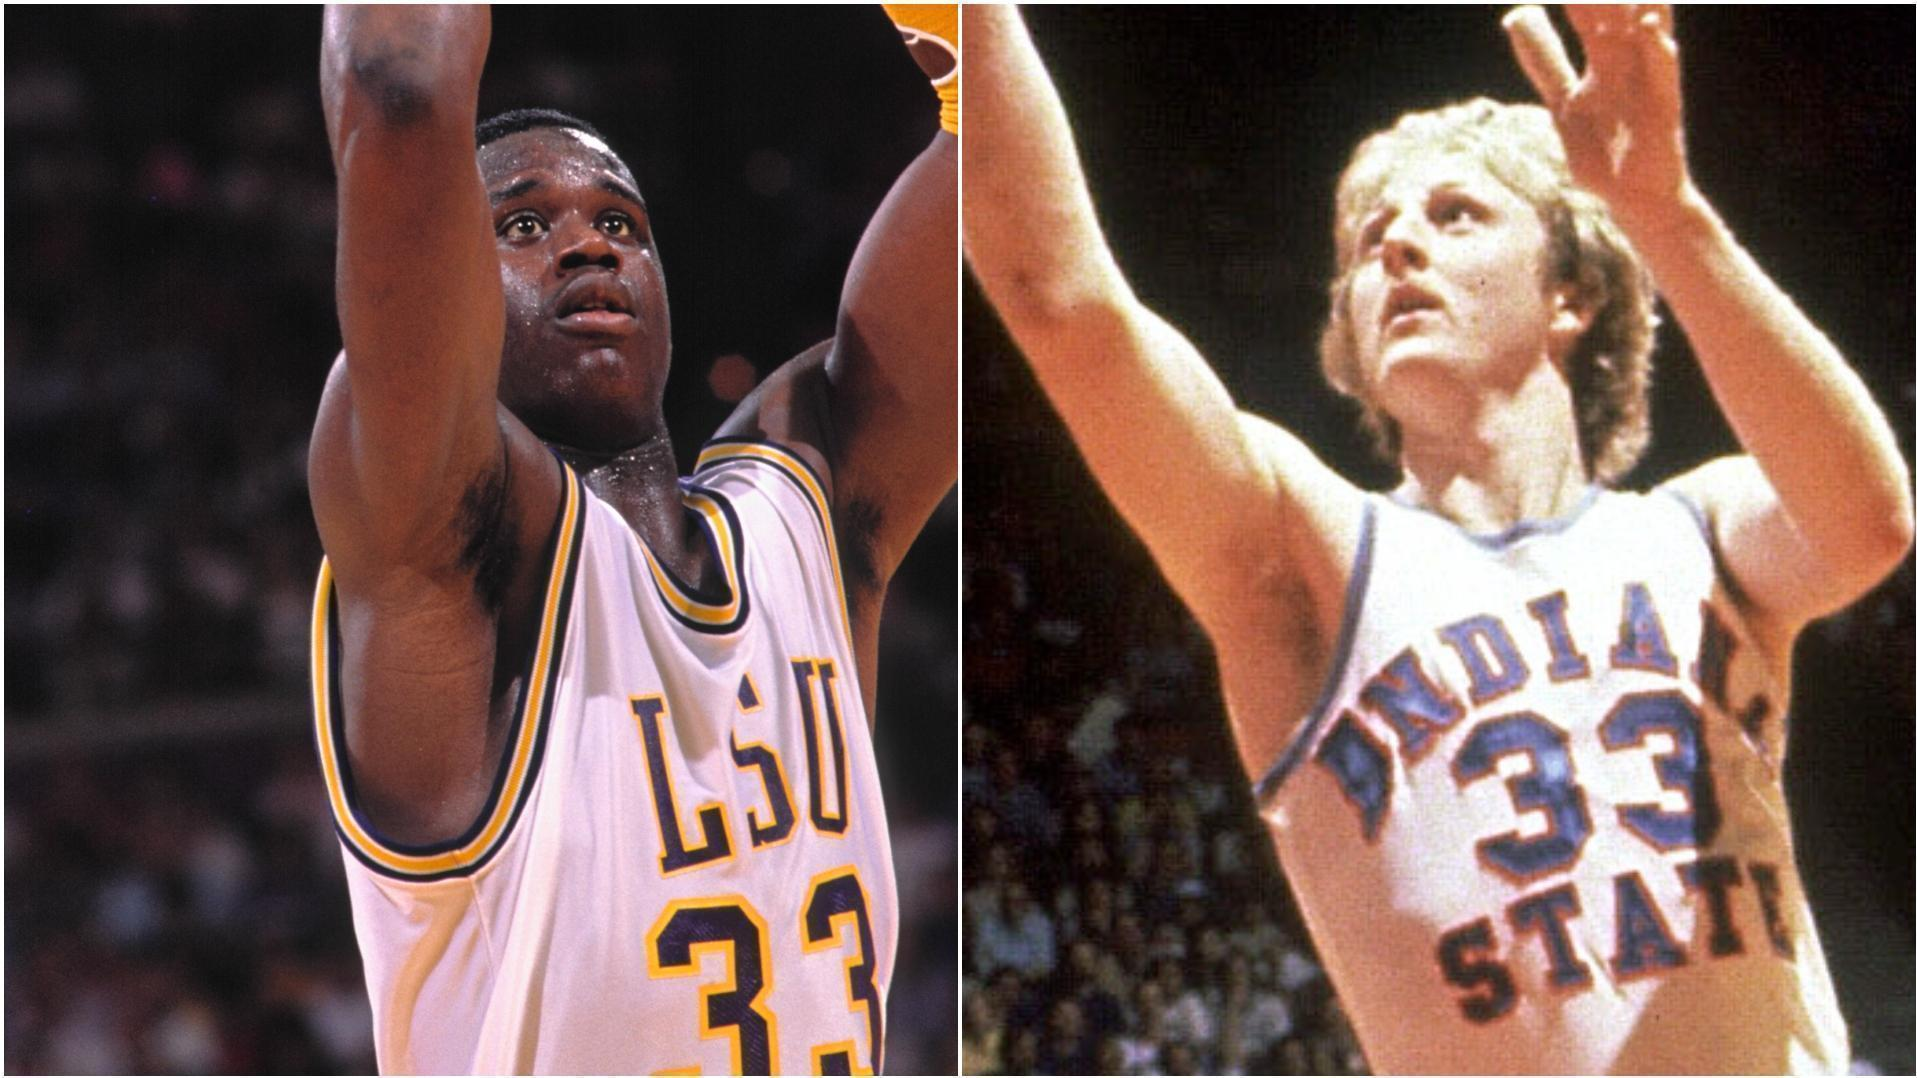 Shaq or Bird: Who should advance to the finals?